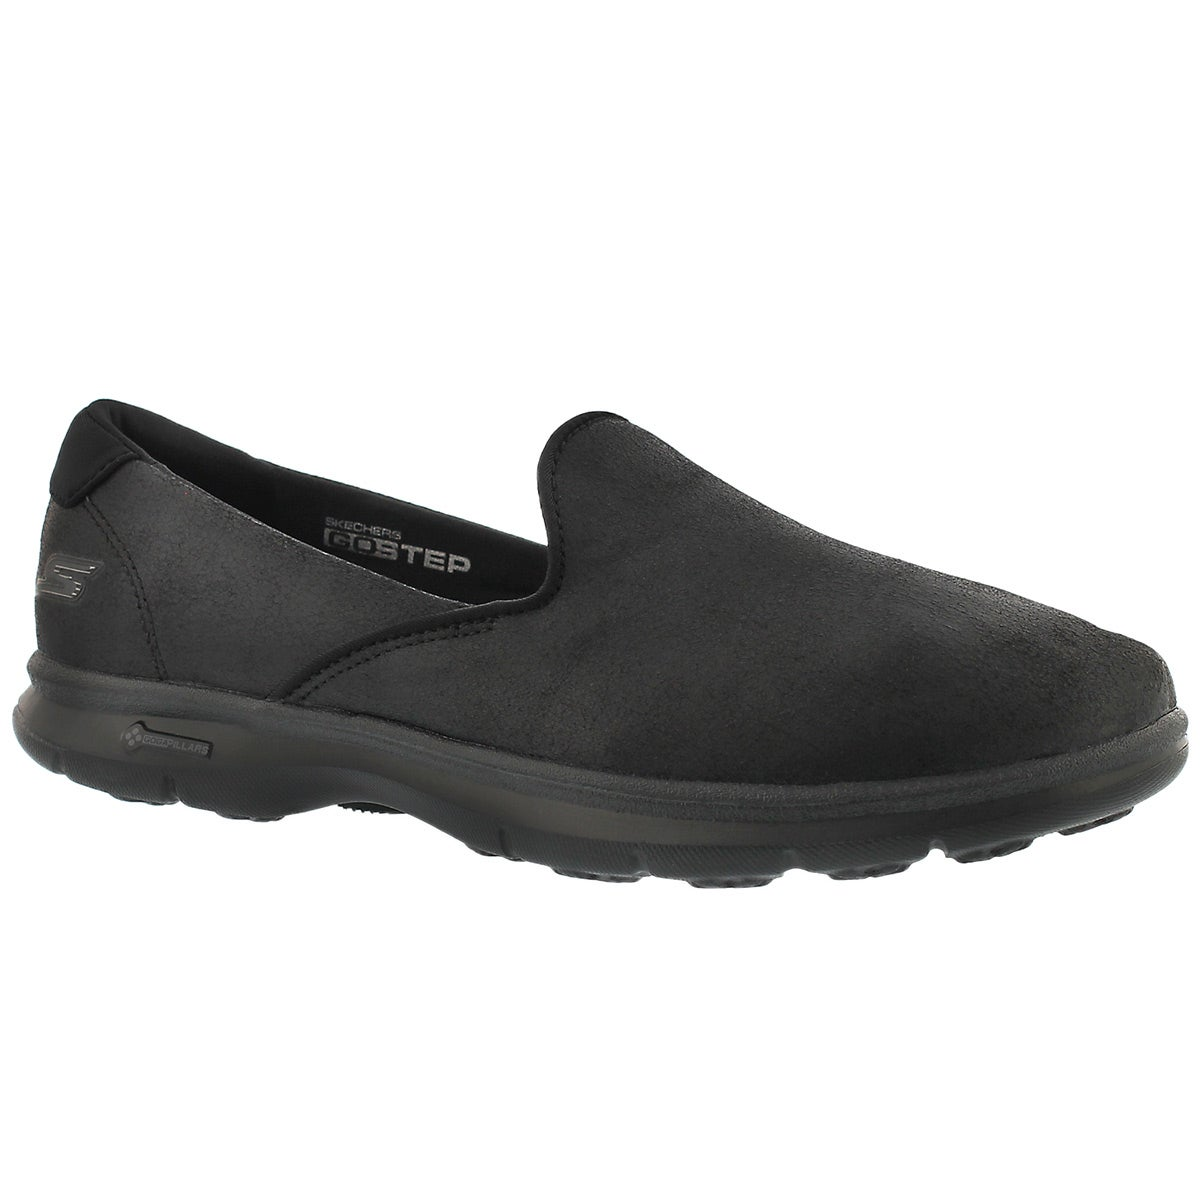 Women's UNTOUCHED black slip on loafers